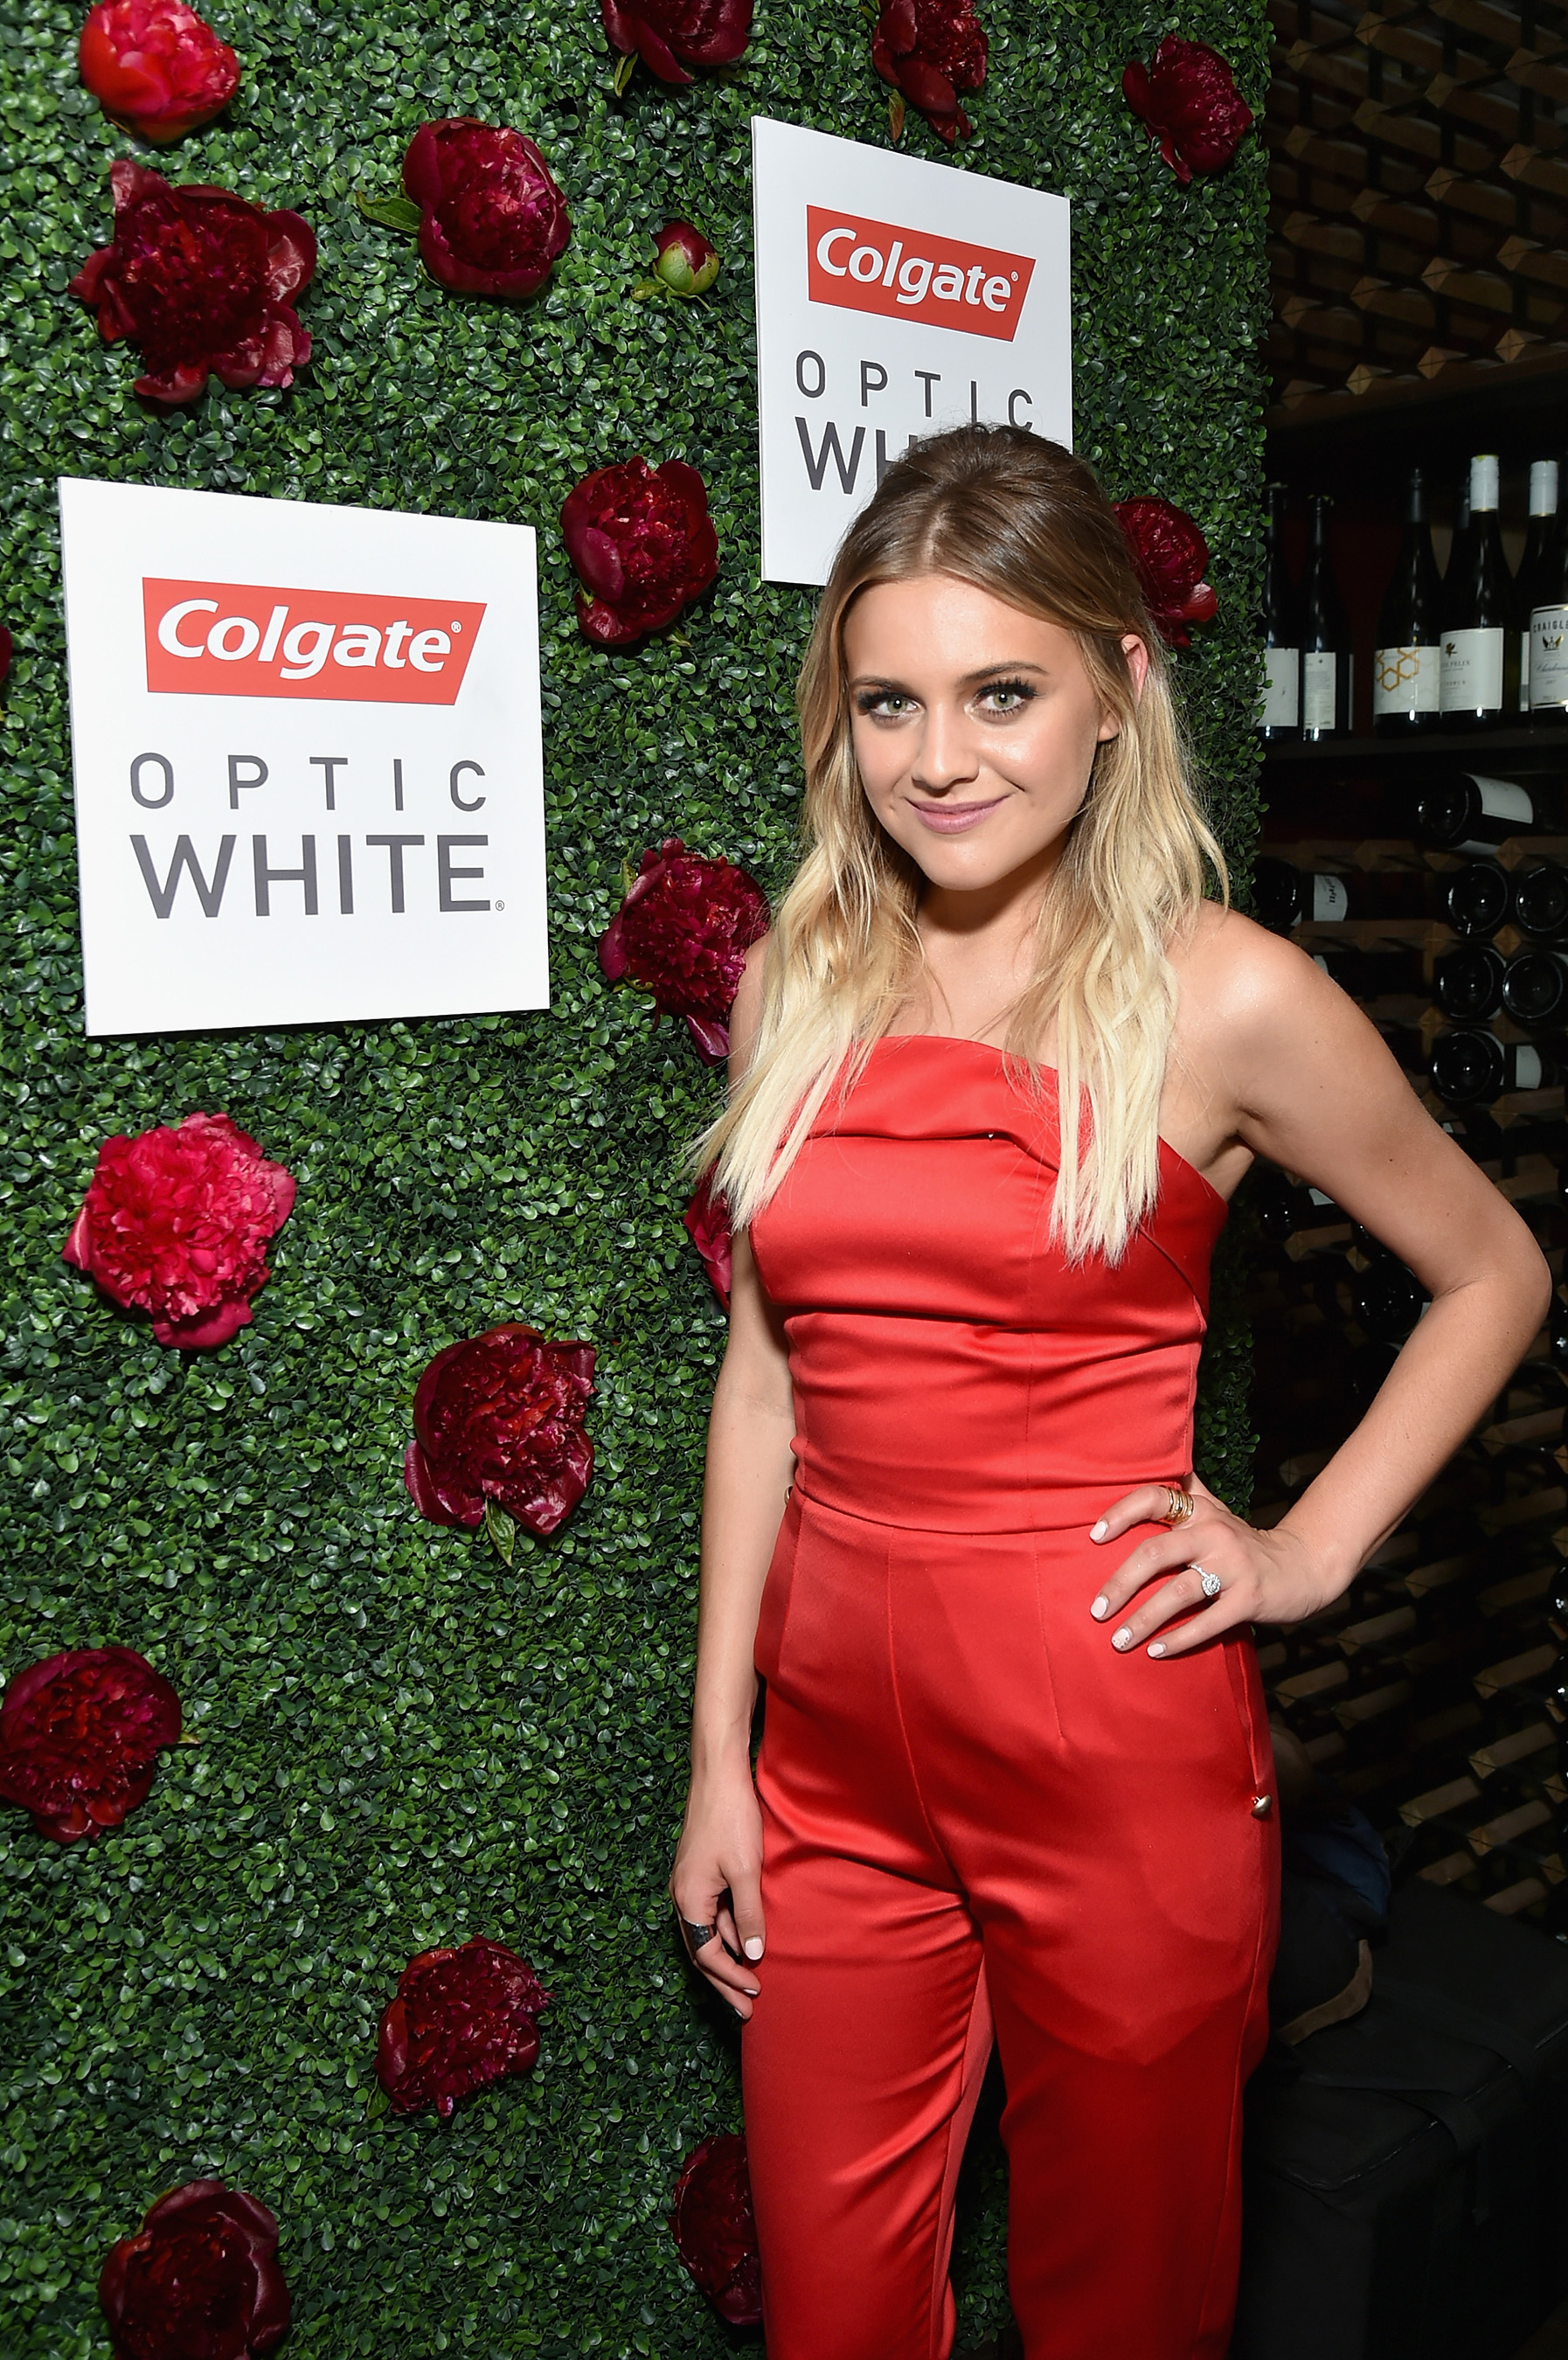 Colgate® Optic White® Partners With Country Music Star Kelsea Ballerini To Share Her Personal Journey And Real Moments That Make Her Smile